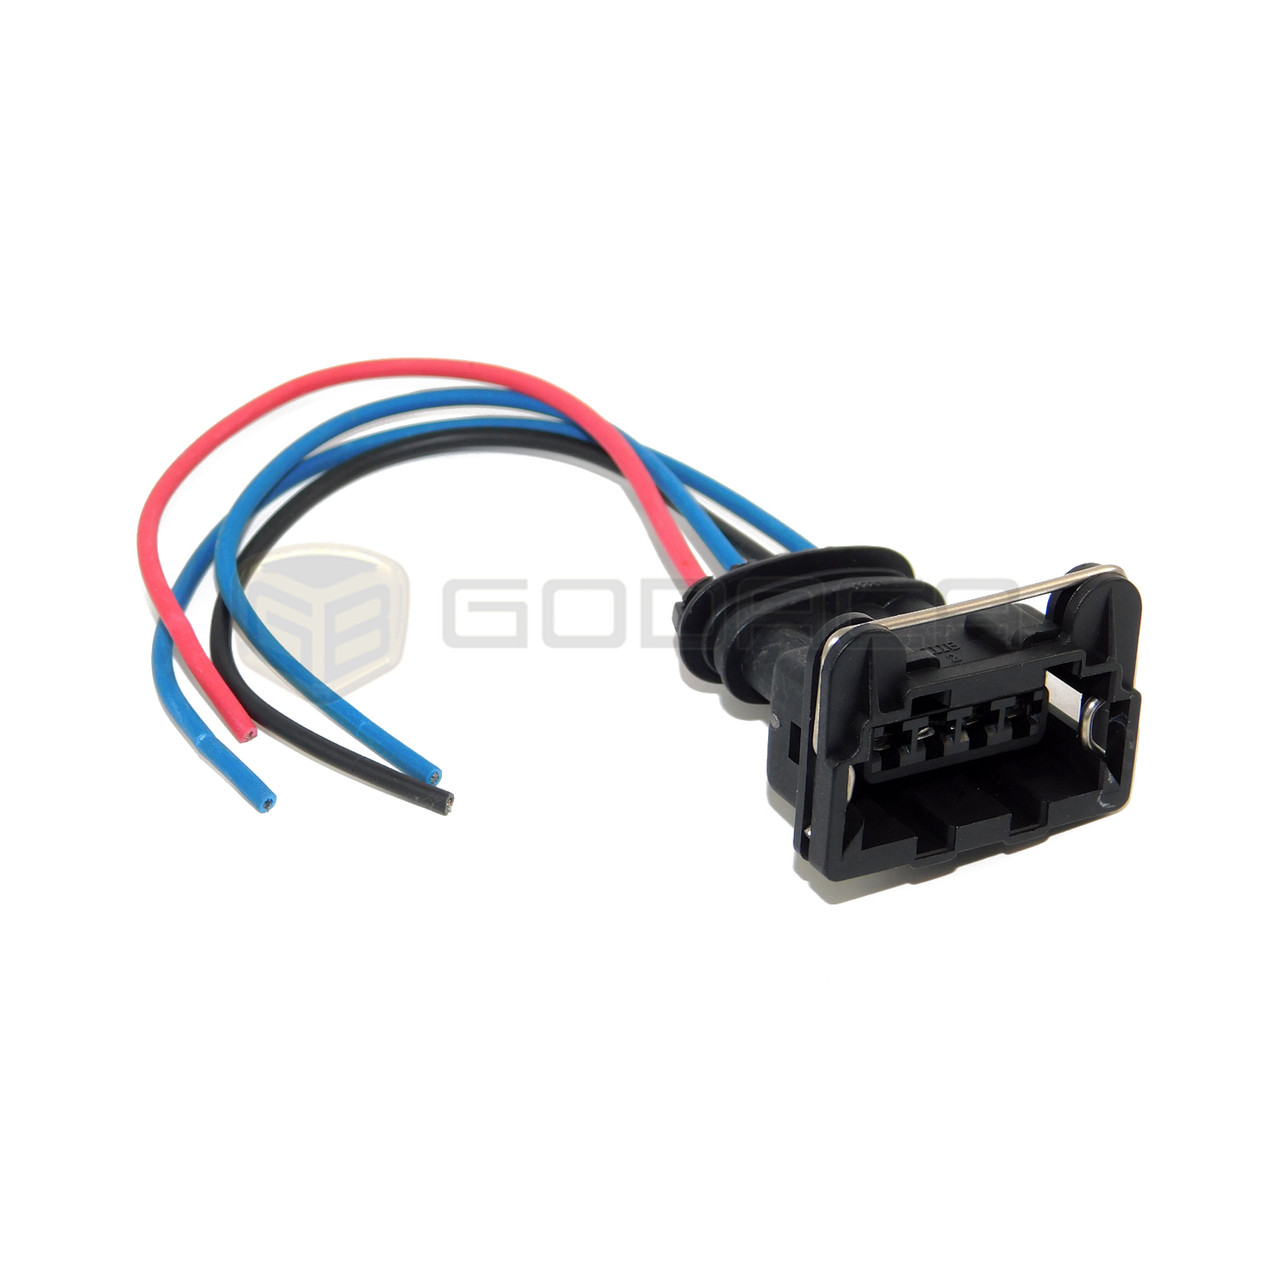 medium resolution of 1 x connector 4 way sensor distributor fuel injector connector harness plug godaca llc